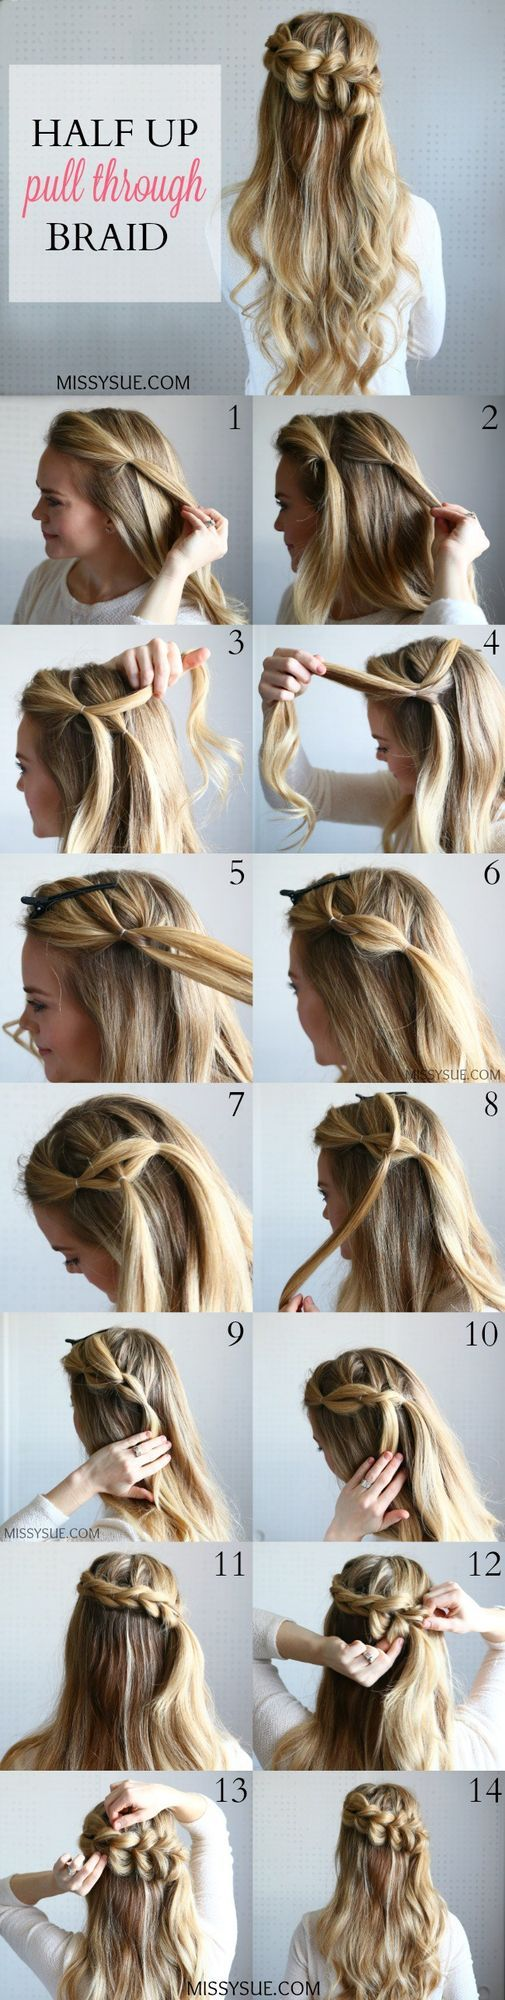 best beauty images on pinterest long hair braid styles and